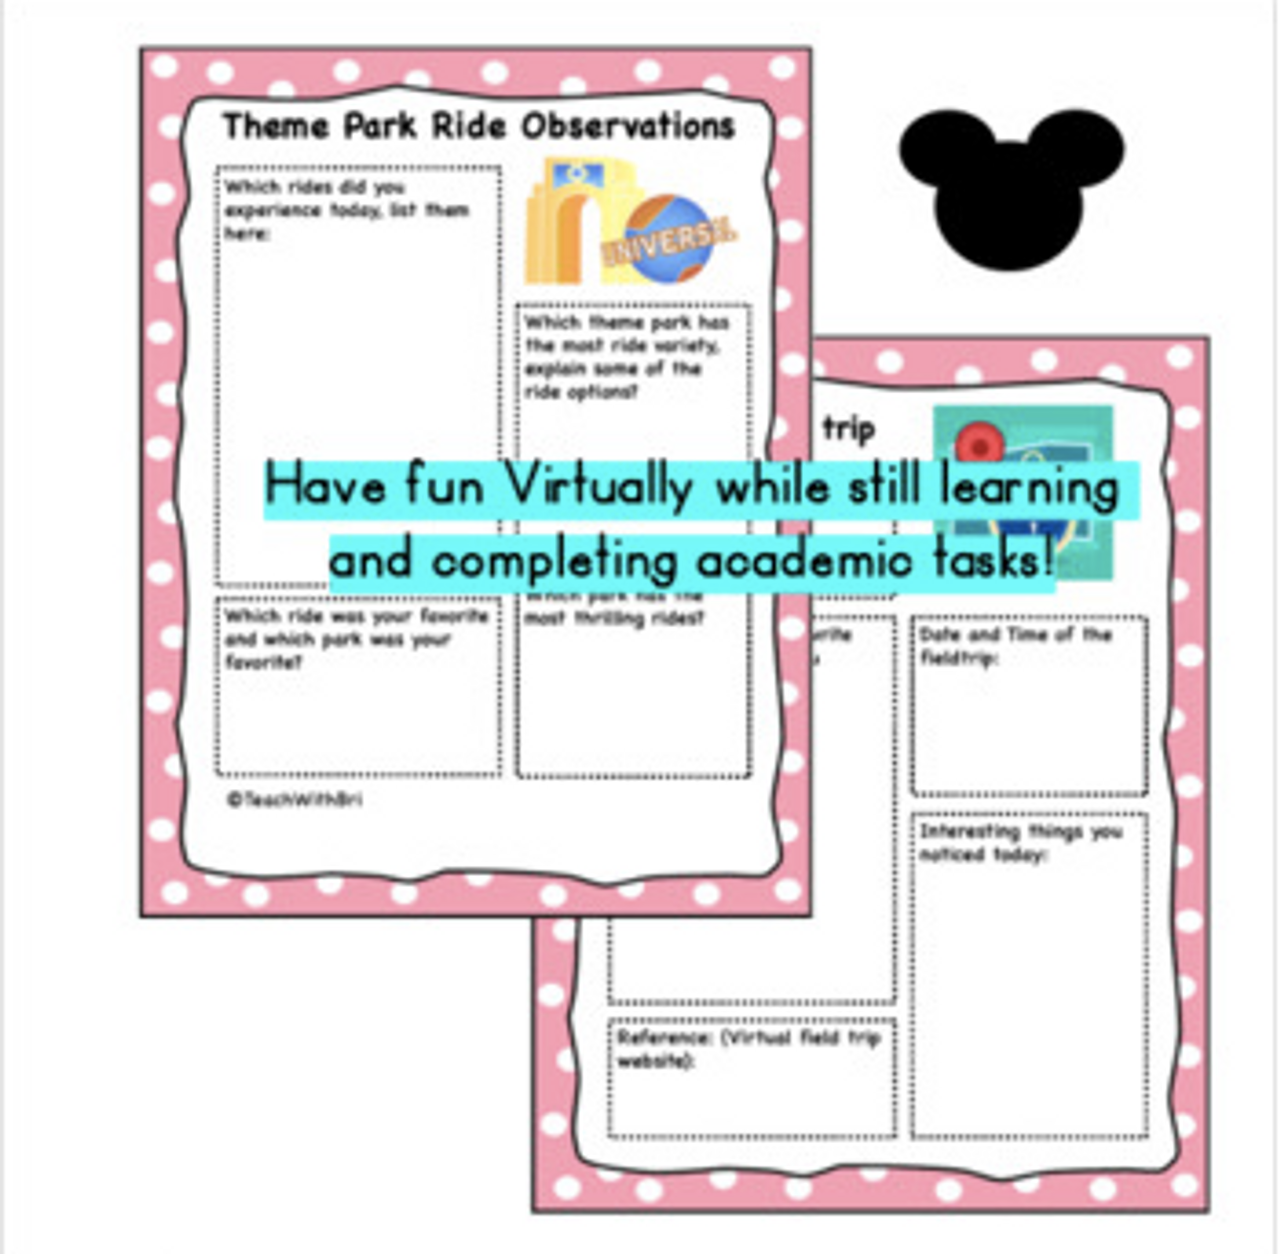 Virtual Field Trip to the Amusement Park- Ride the Rides, Explore, and Learn